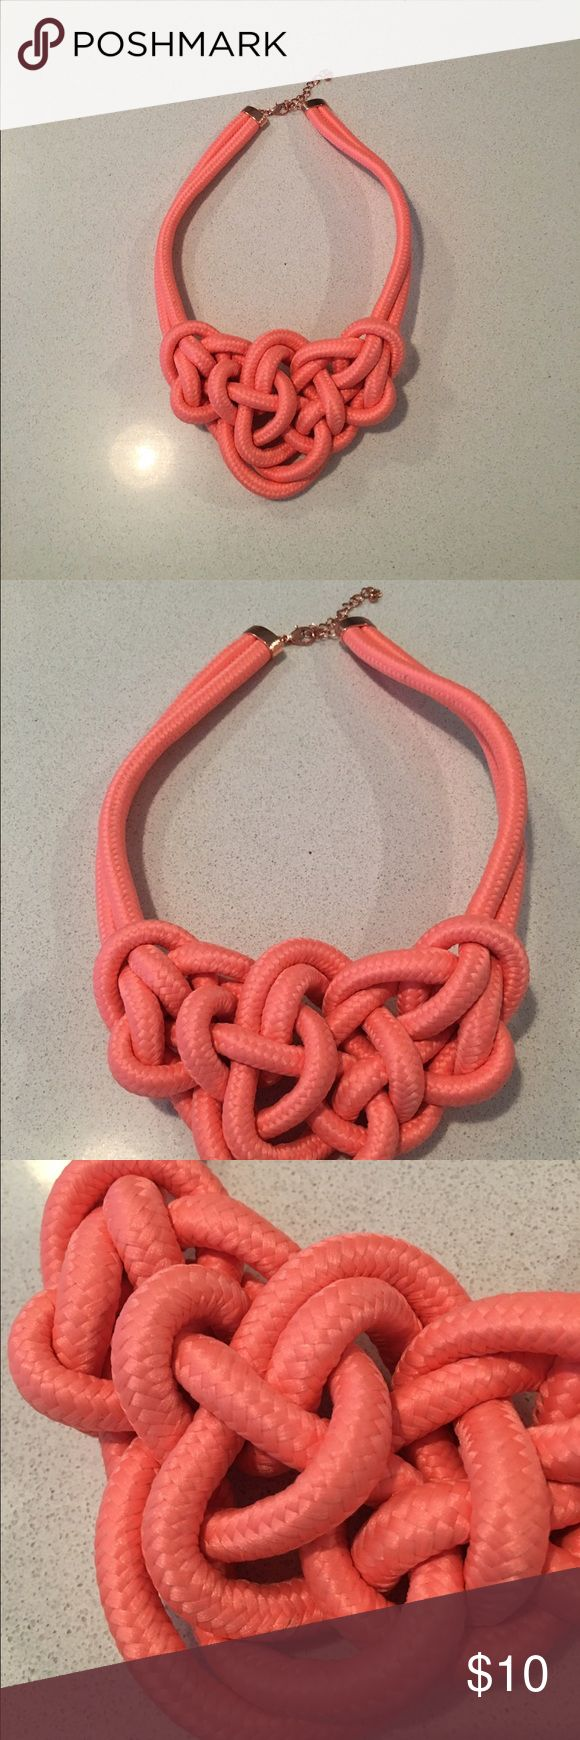 BNWOT Coral statement necklace Brand new, never worn gorgeous Coral statement necklace. Let me know if you have any questions. Jewelry Necklaces